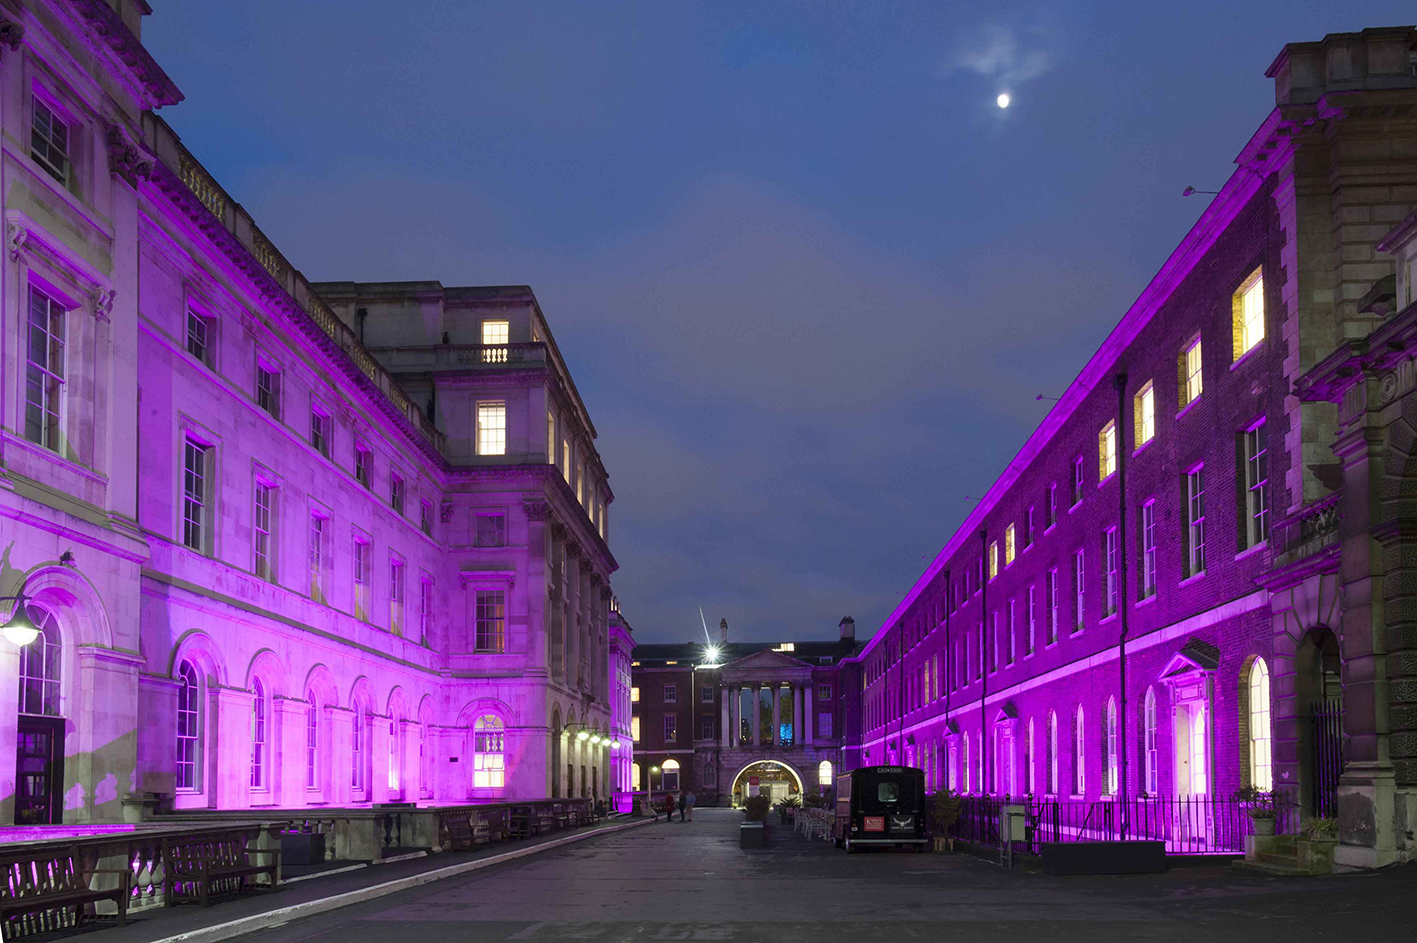 Kings College London building at night illuminated in purple